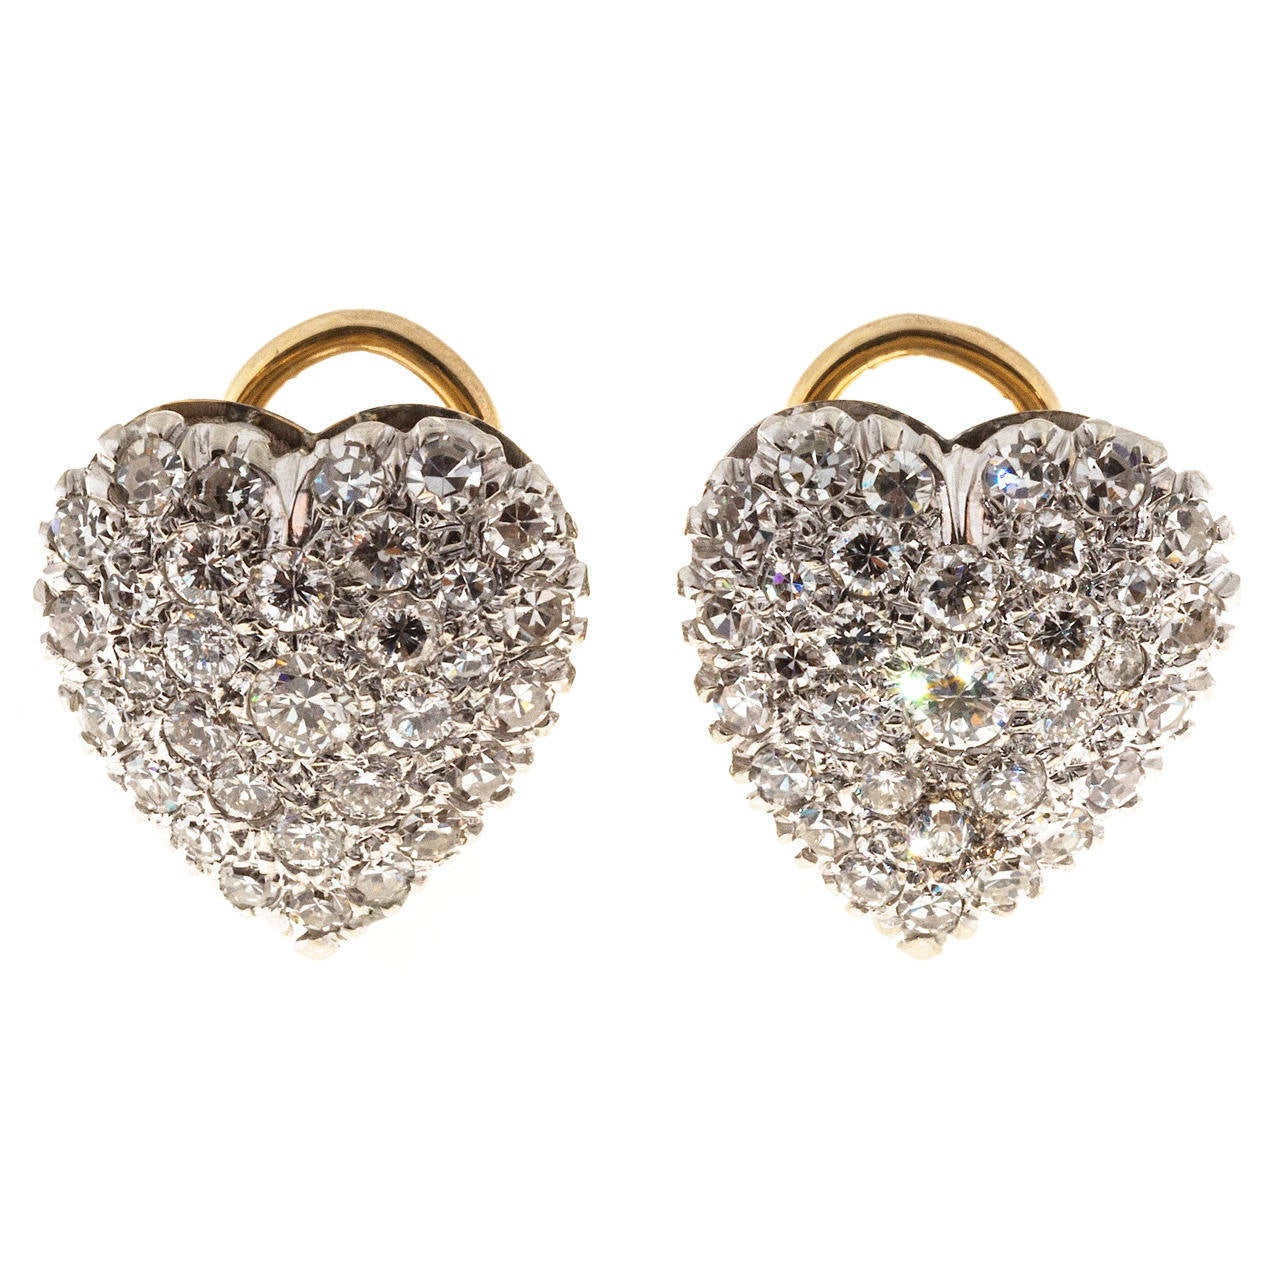 1.85 Carat Pave Diamond Two Tone Gold Heart Clip Post Earrings